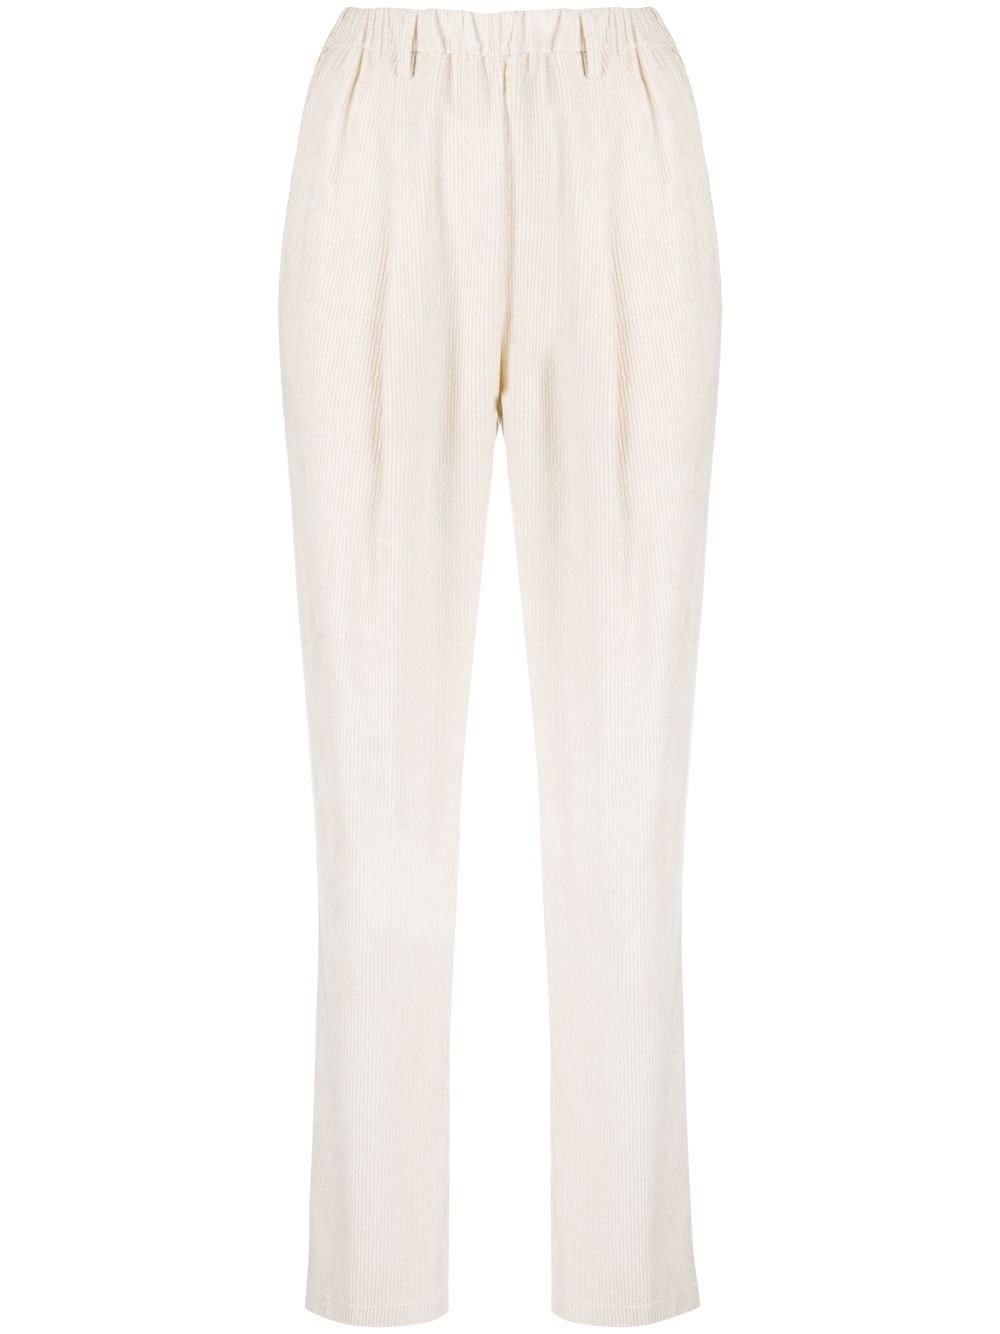 FORTE_FORTE Corduroy Finish Trousers